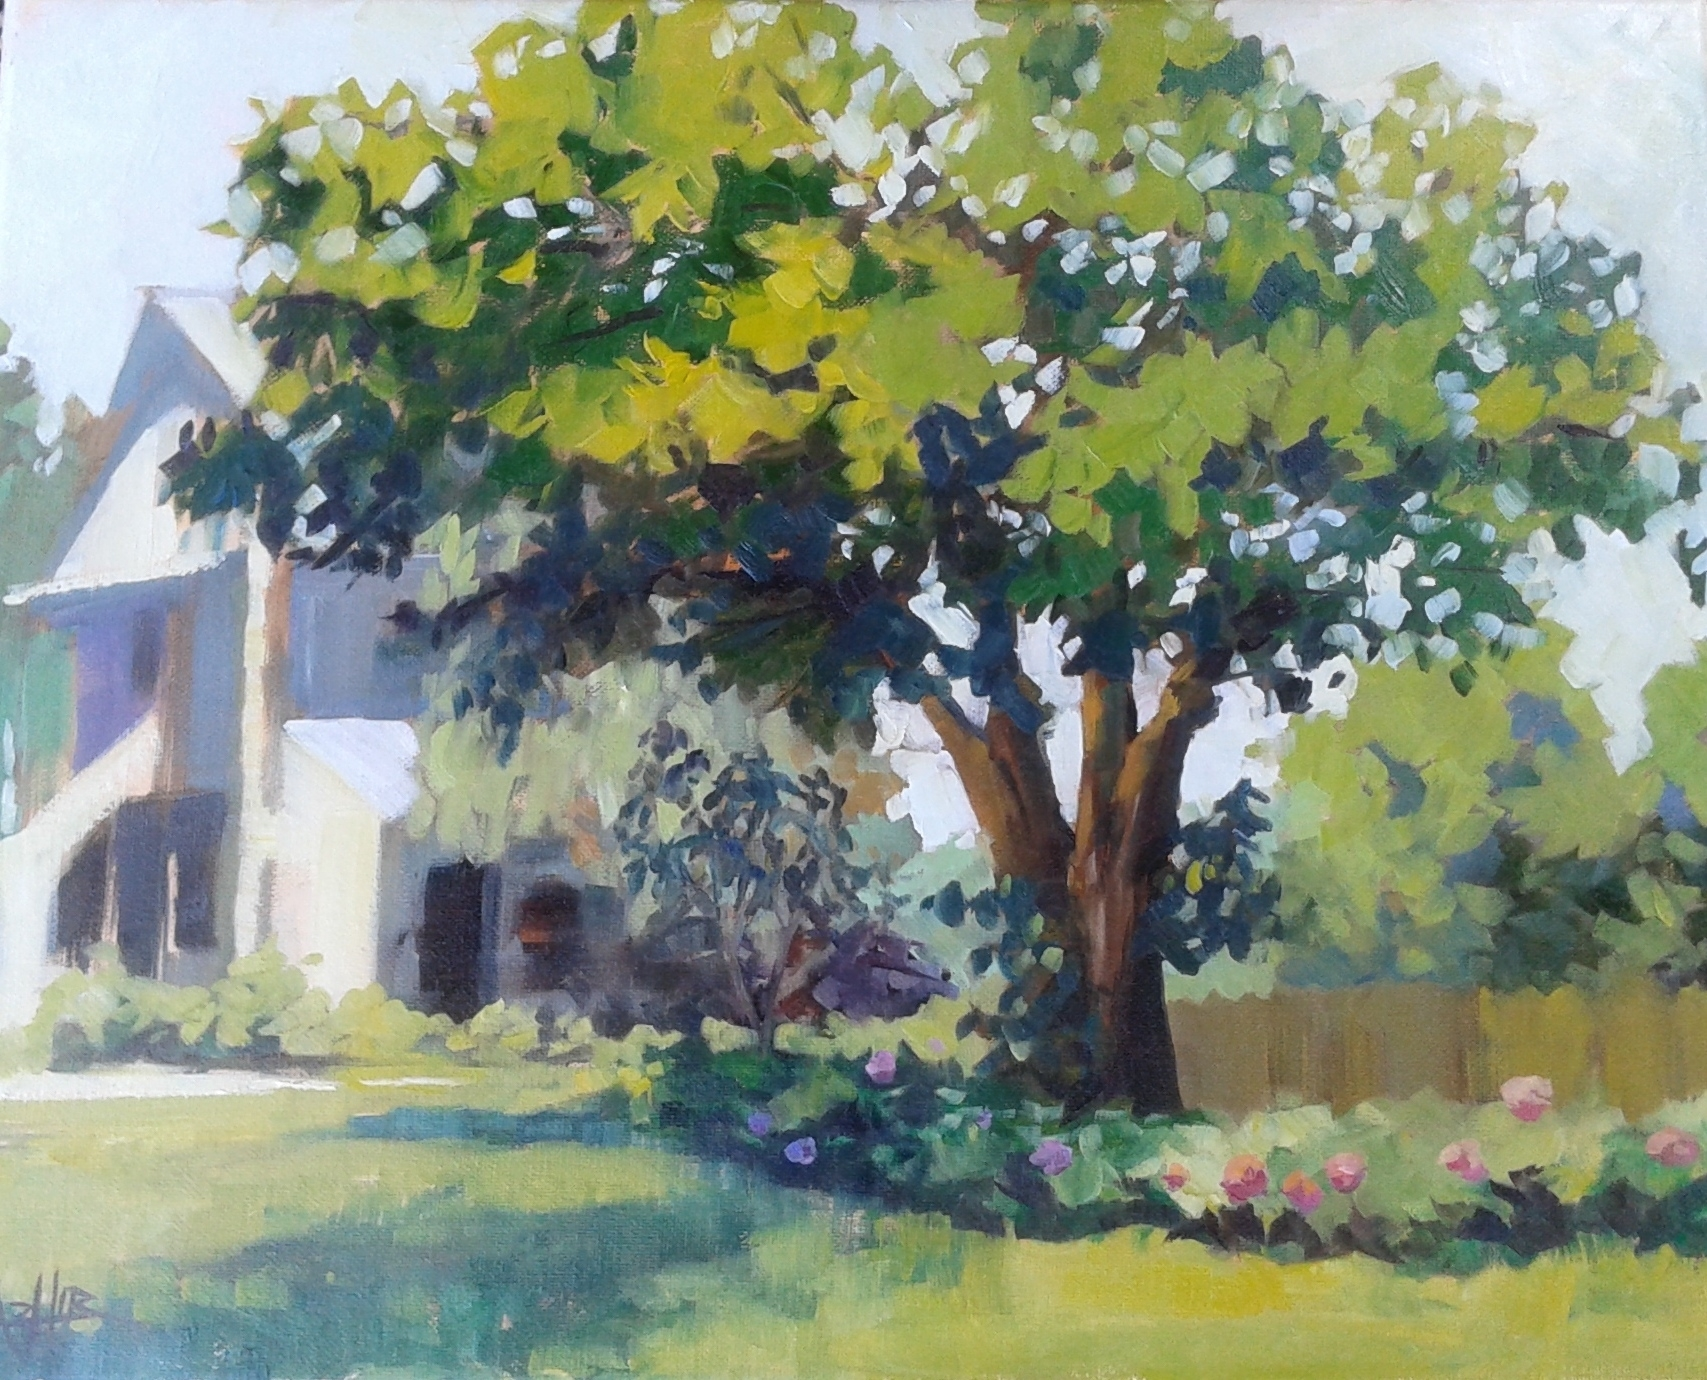 """SOLD, The Mulberry Tree at Stoney Creek Farm, Copyright 2015 Hirschten, Oil on Canvas, 16"""" x 20"""""""